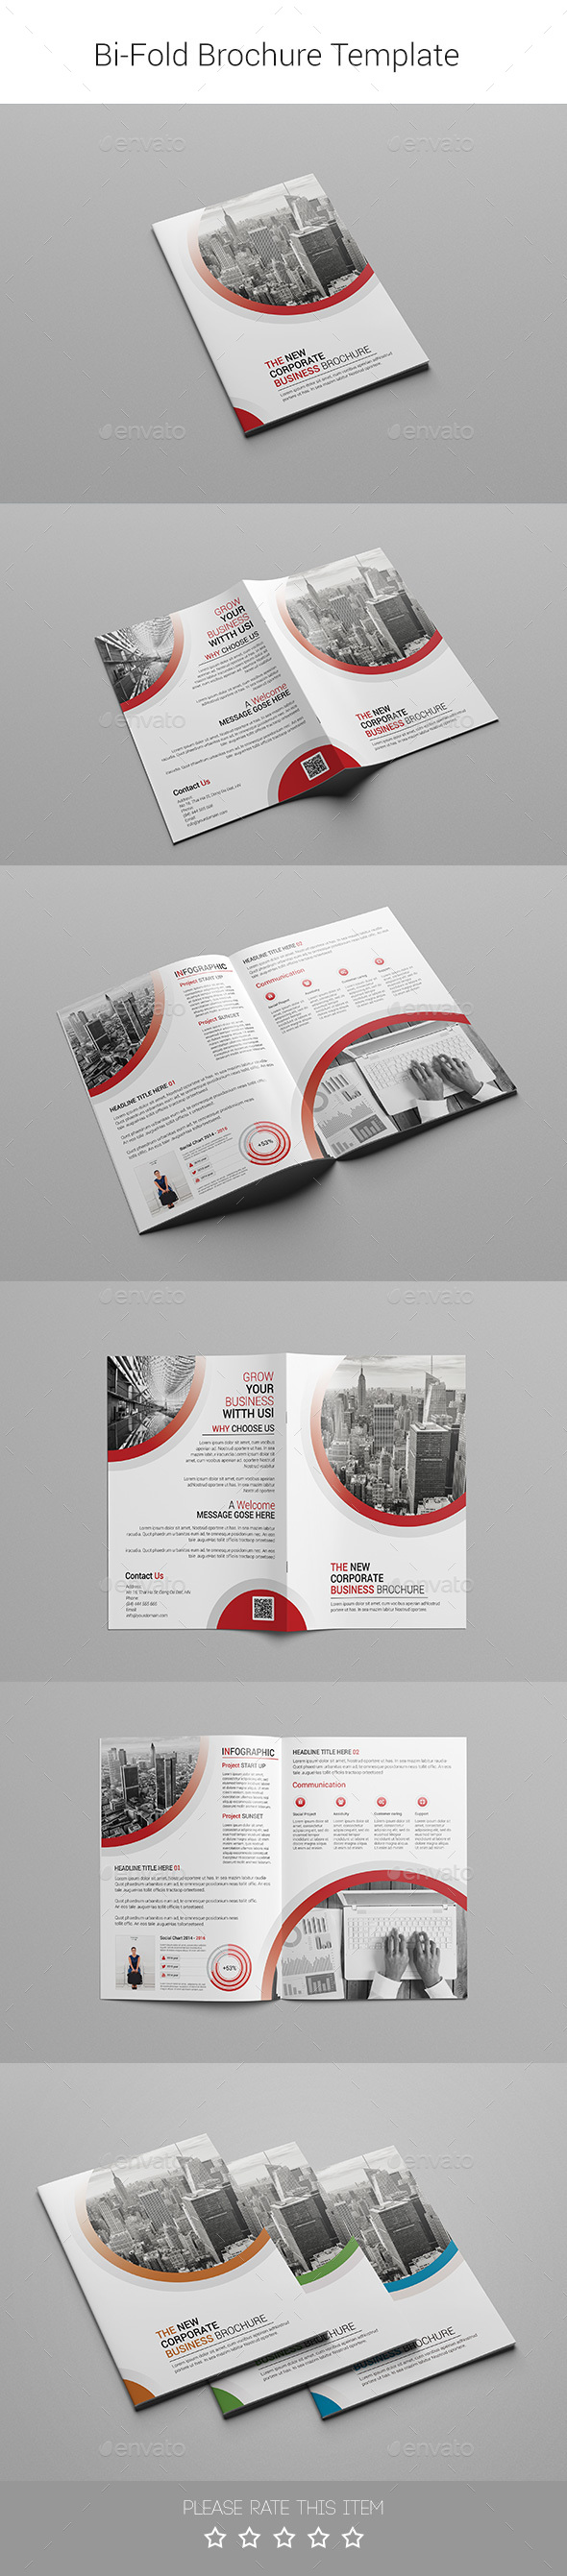 Corporate Bi-fold Brochure-Multipurpose 07 - Corporate Brochures